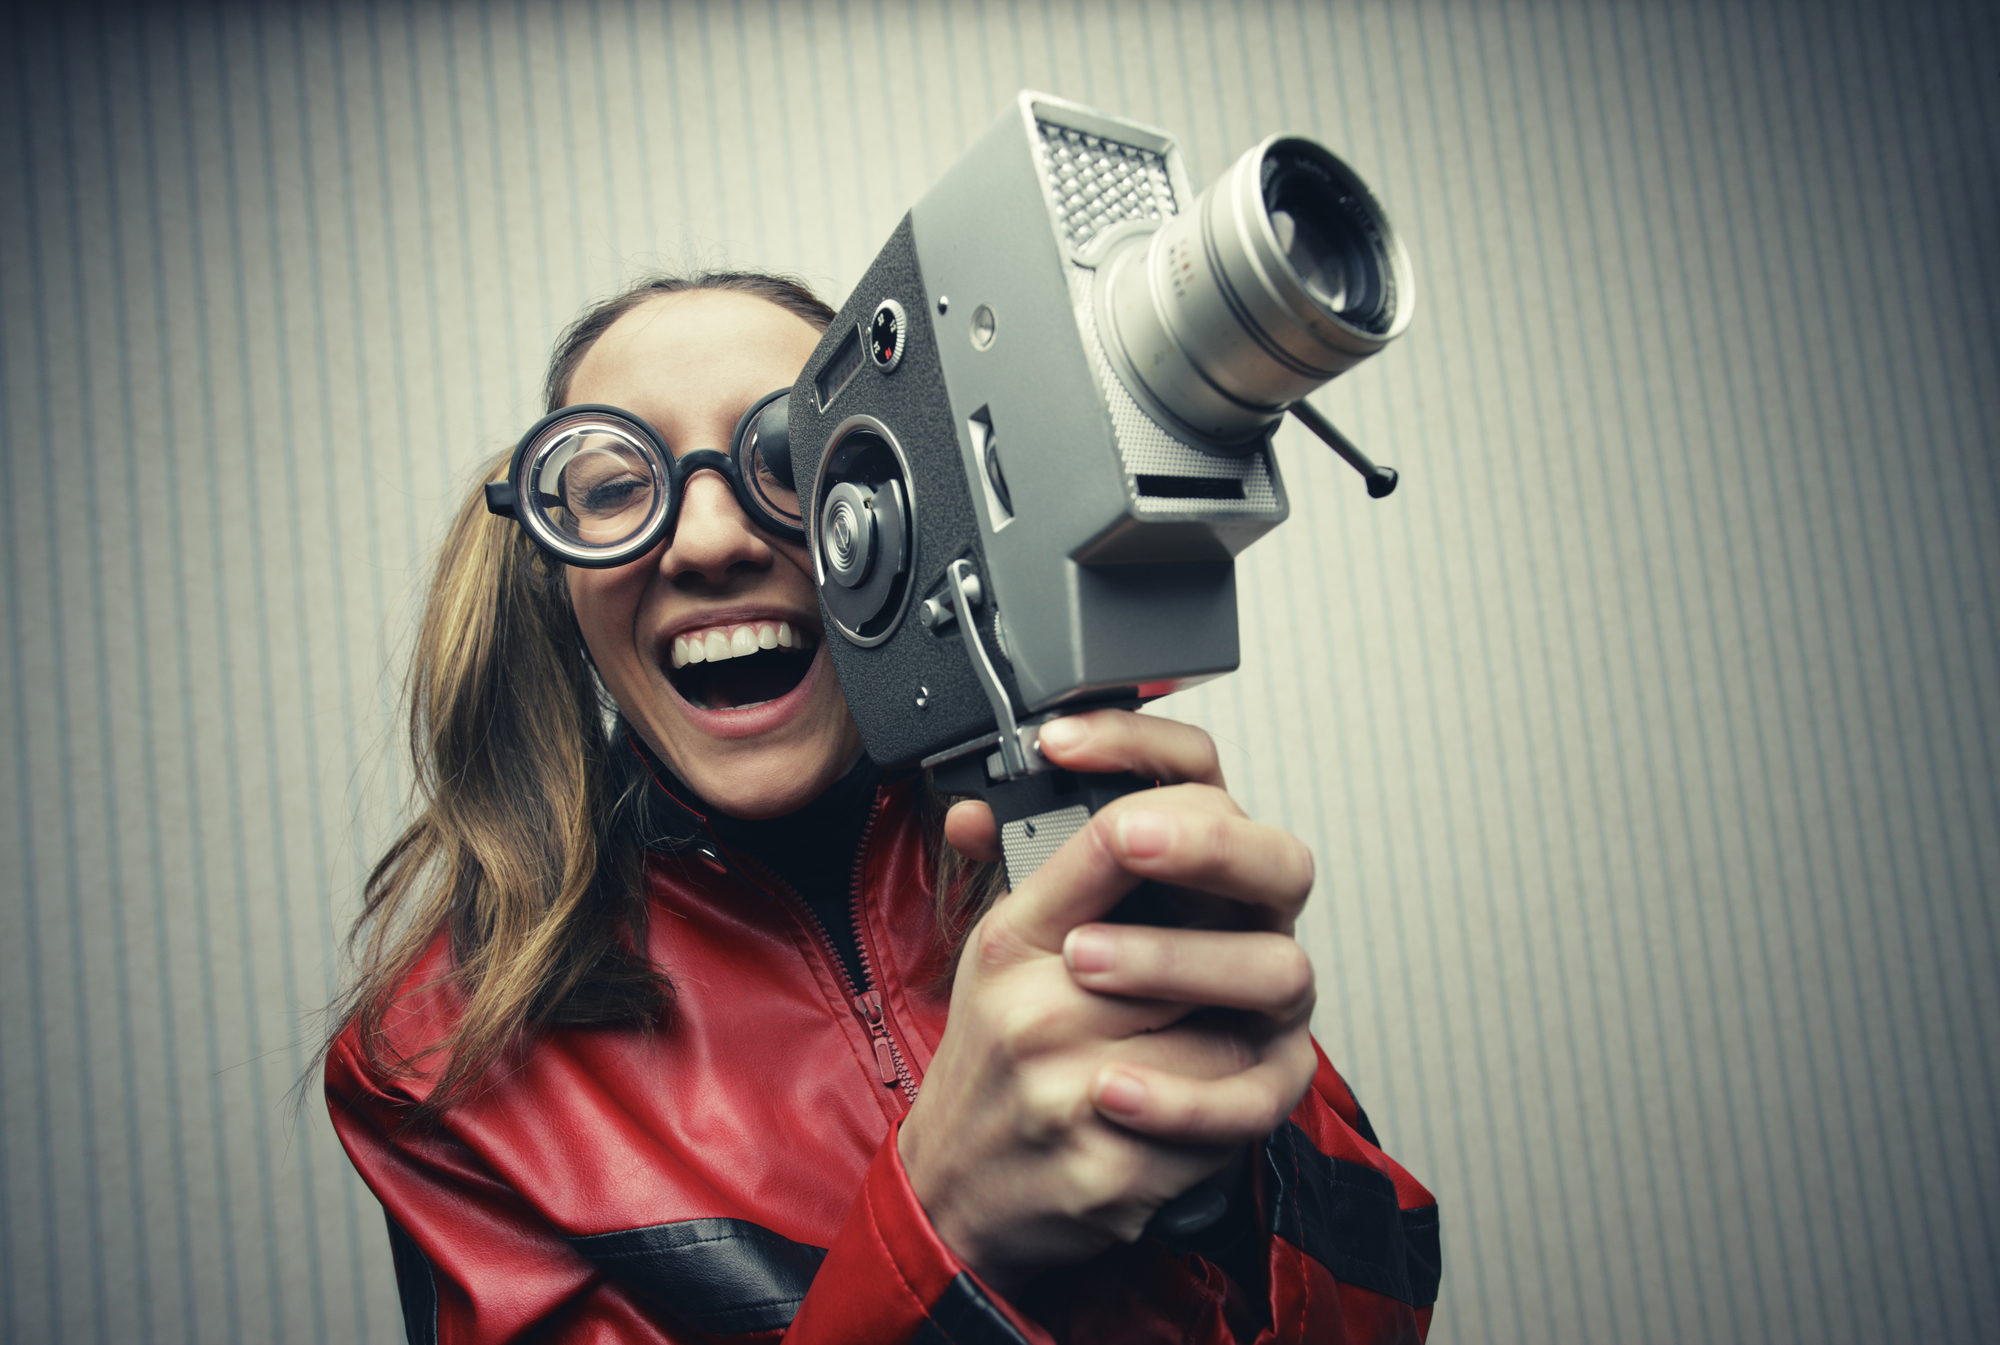 Why Twitter Video Will Benefit Your Brand Plus 8 Ideas You Can Use - Madalyn Sklar